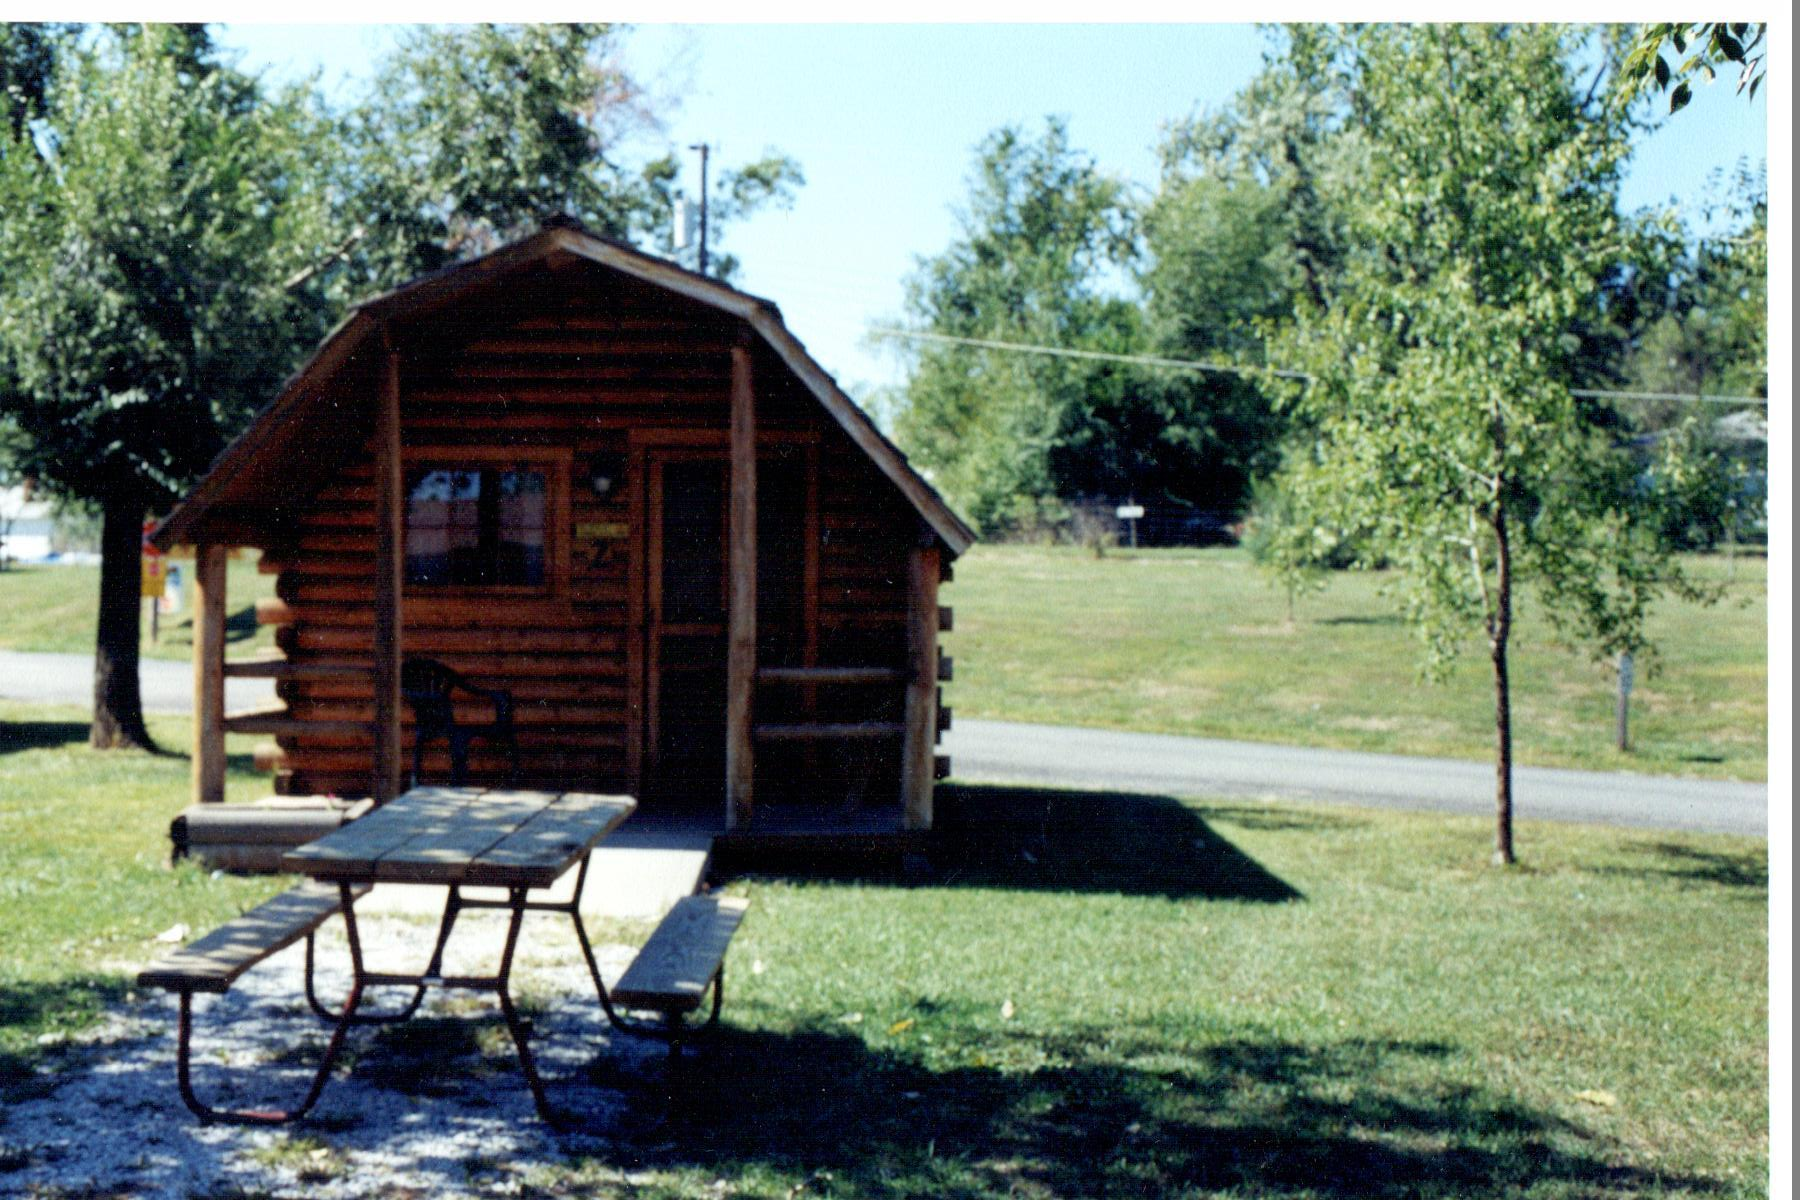 white no lodge of to rafting cabin kansas return trips ranch you rentals on specialty cabins river allow water whitewater idaho in salmon s